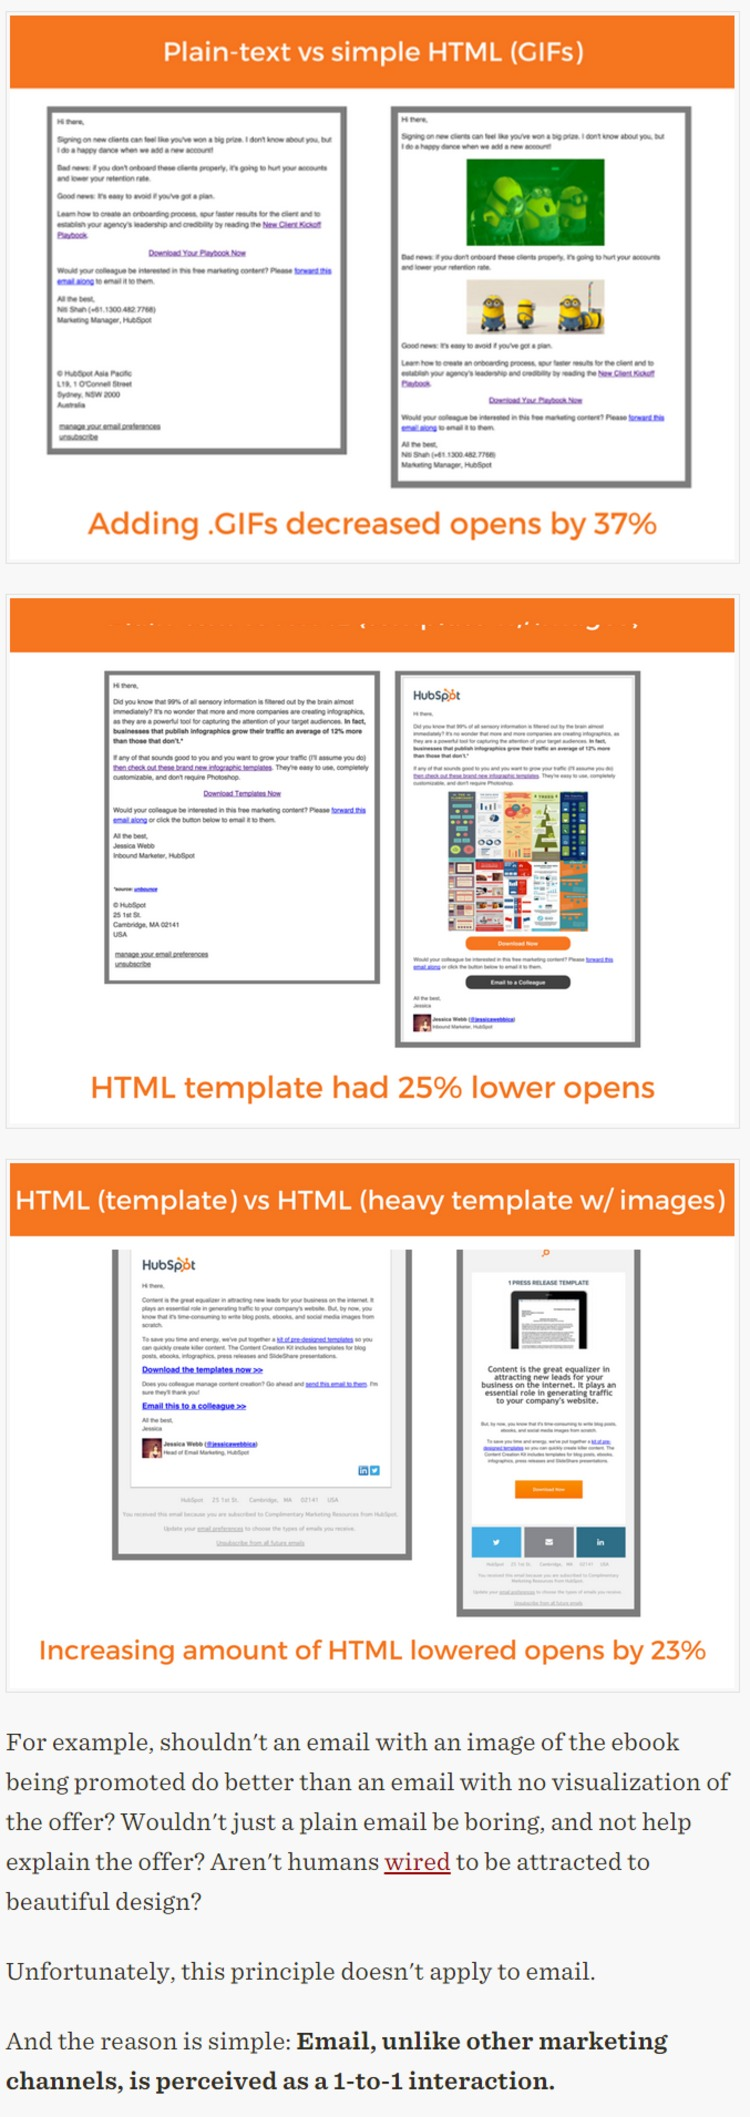 Plain Text vs. HTML Emails: Which Is Better? [New Data] - HubSpot   The Marketing Technology Alert   Scoop.it